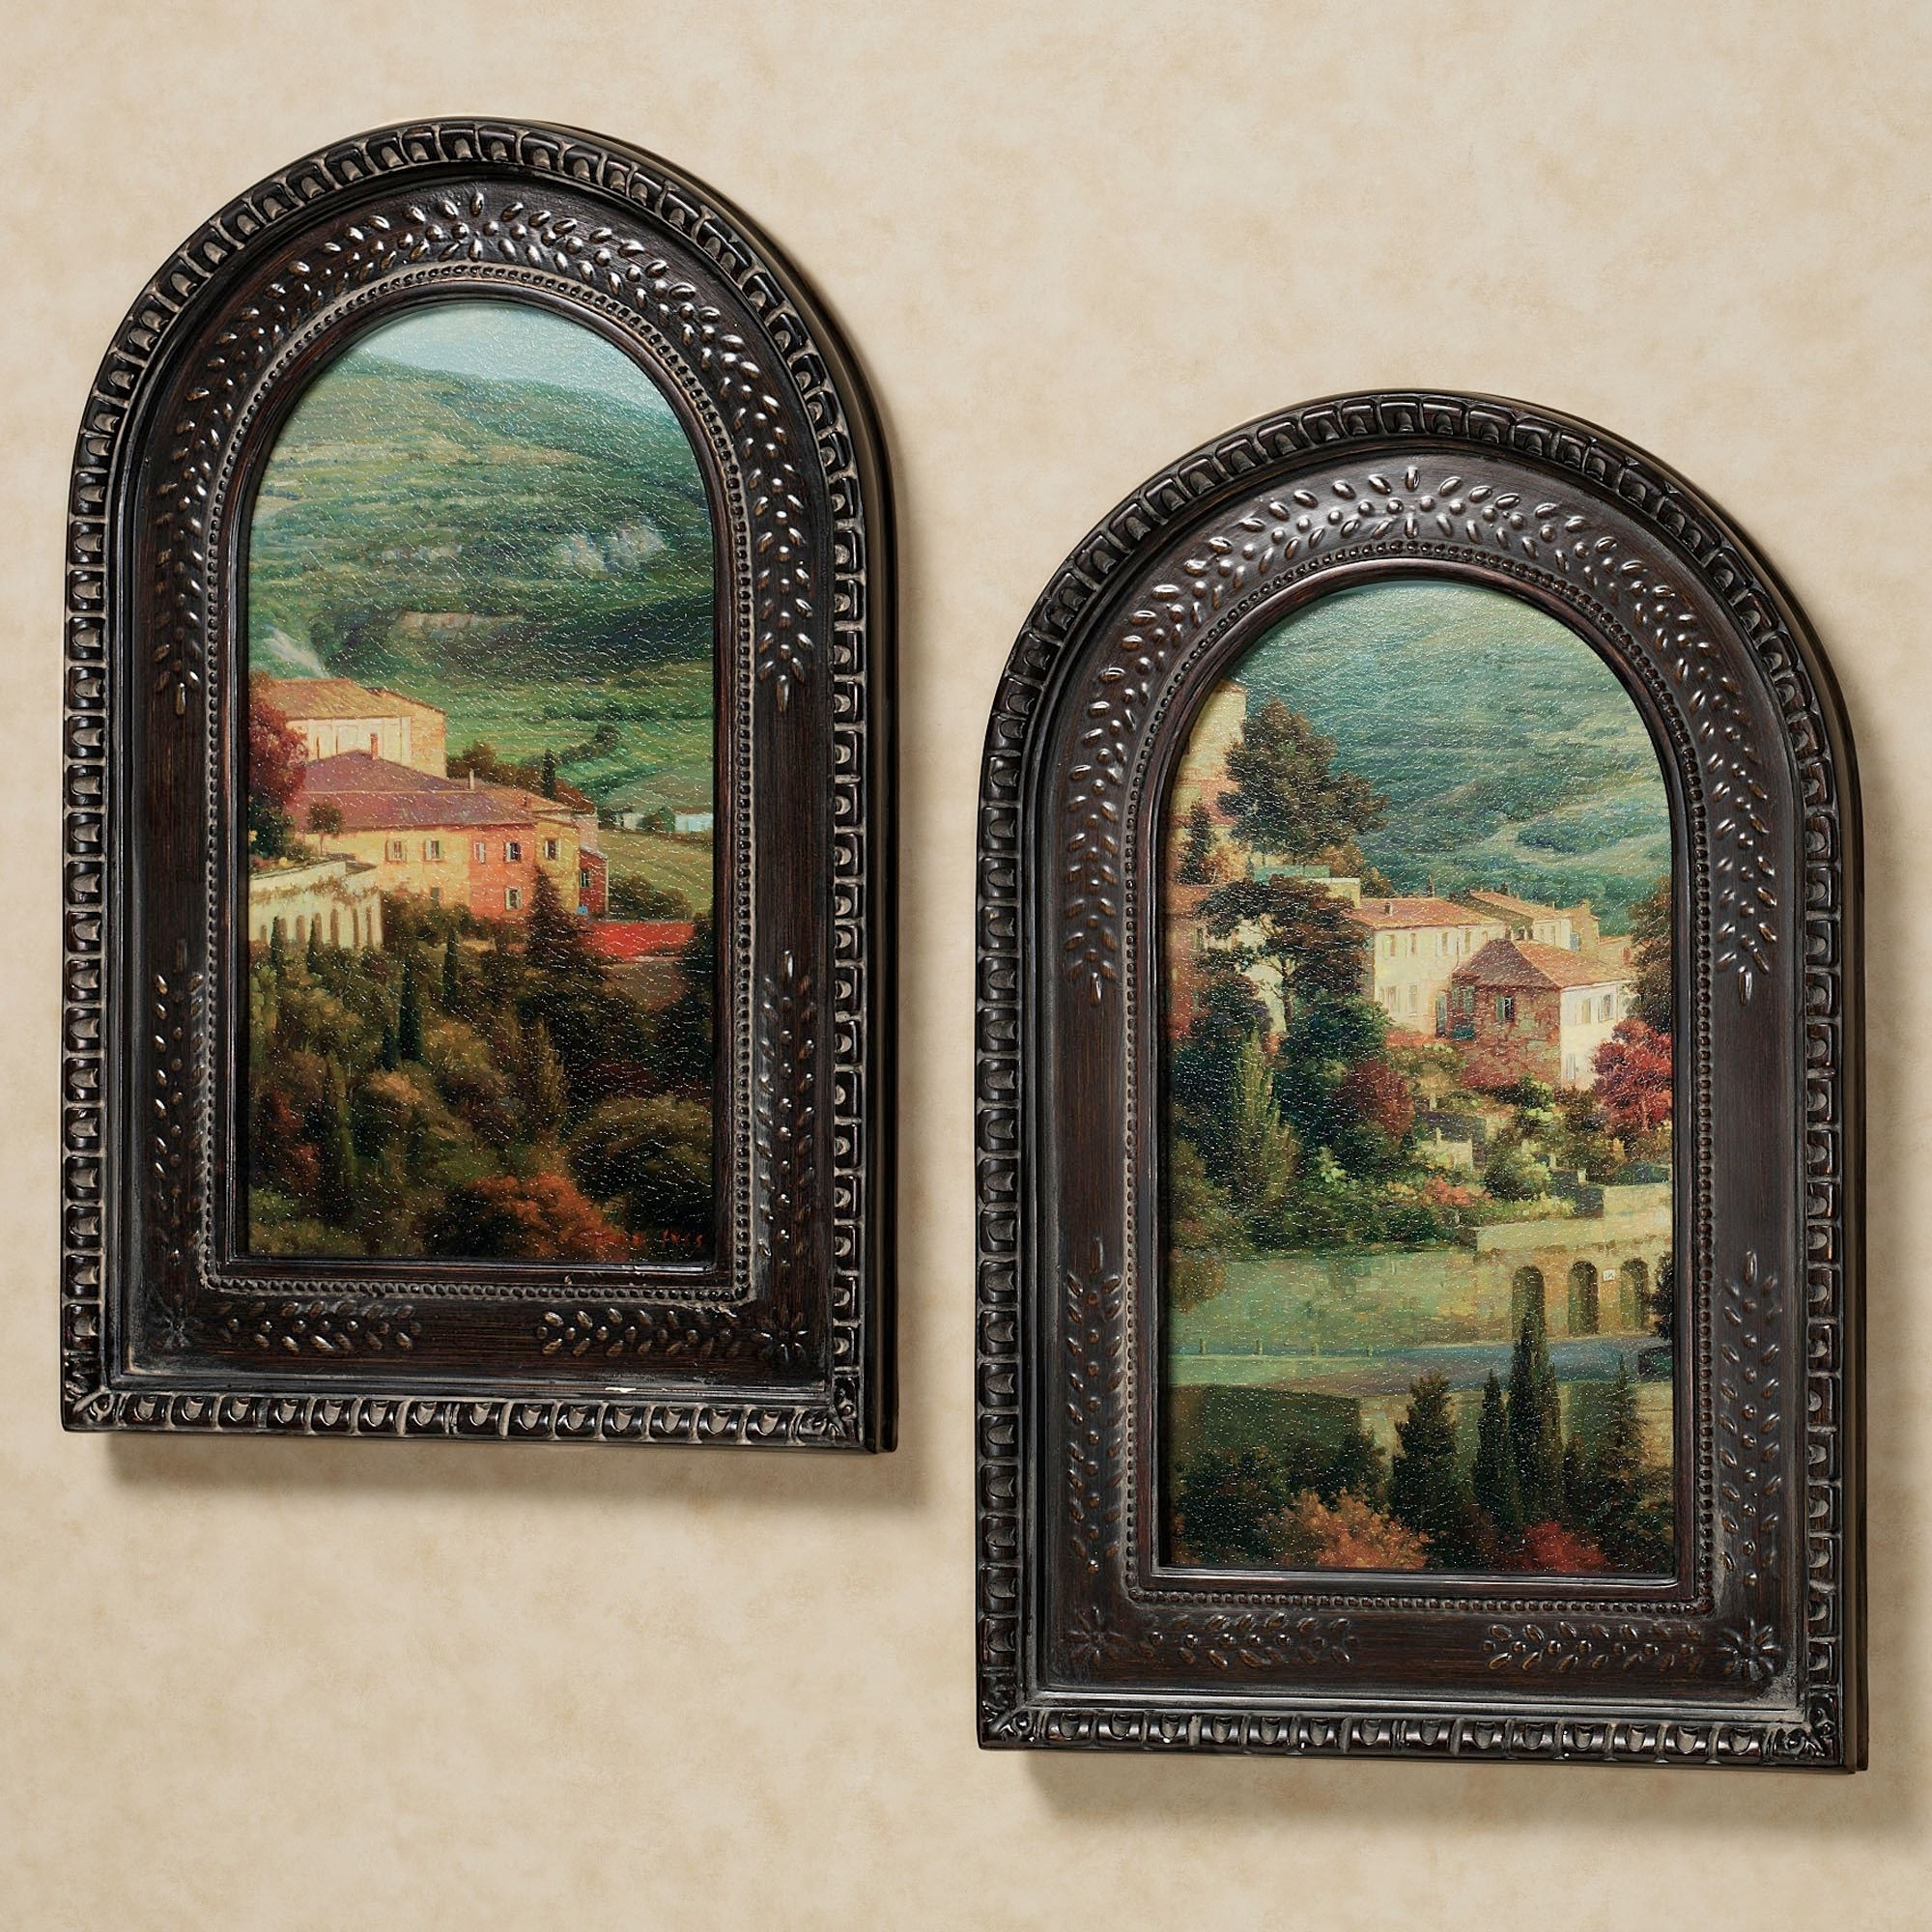 Italian Overlook Framed Wall Art Set Inside Best And Newest Framed Wall Art (View 7 of 15)